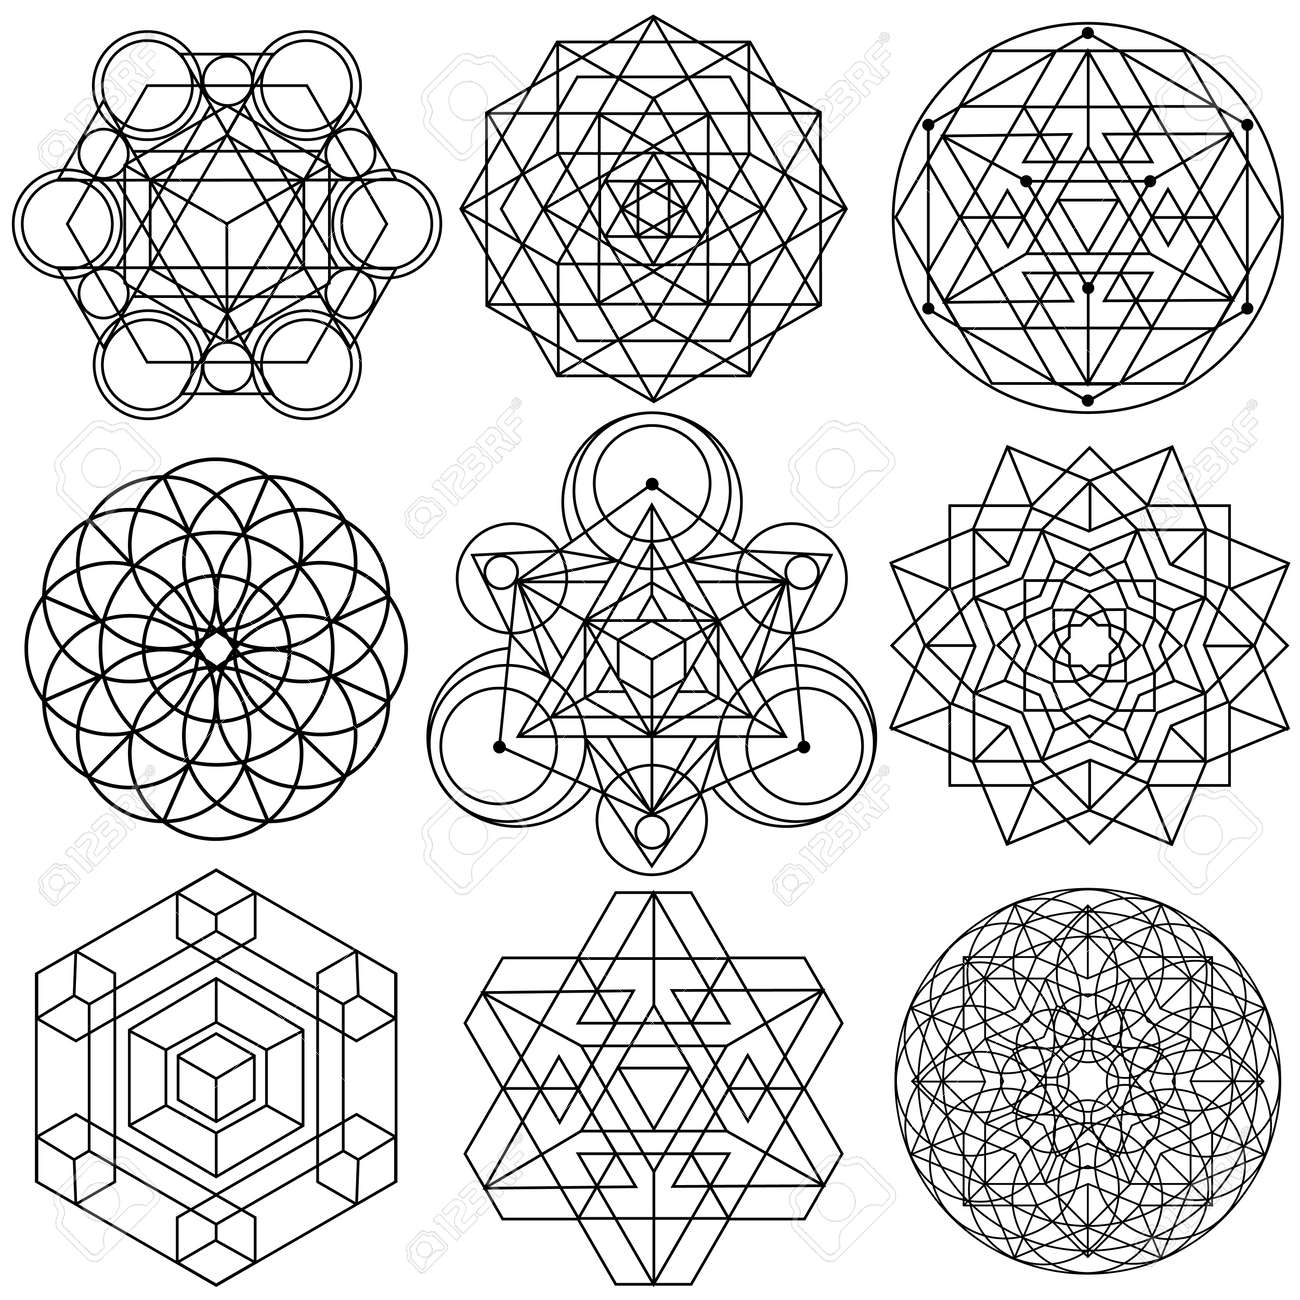 Sacred geometry symbols vector set 04 royalty free cliparts sacred geometry symbols vector set 04 stock vector 70872916 buycottarizona